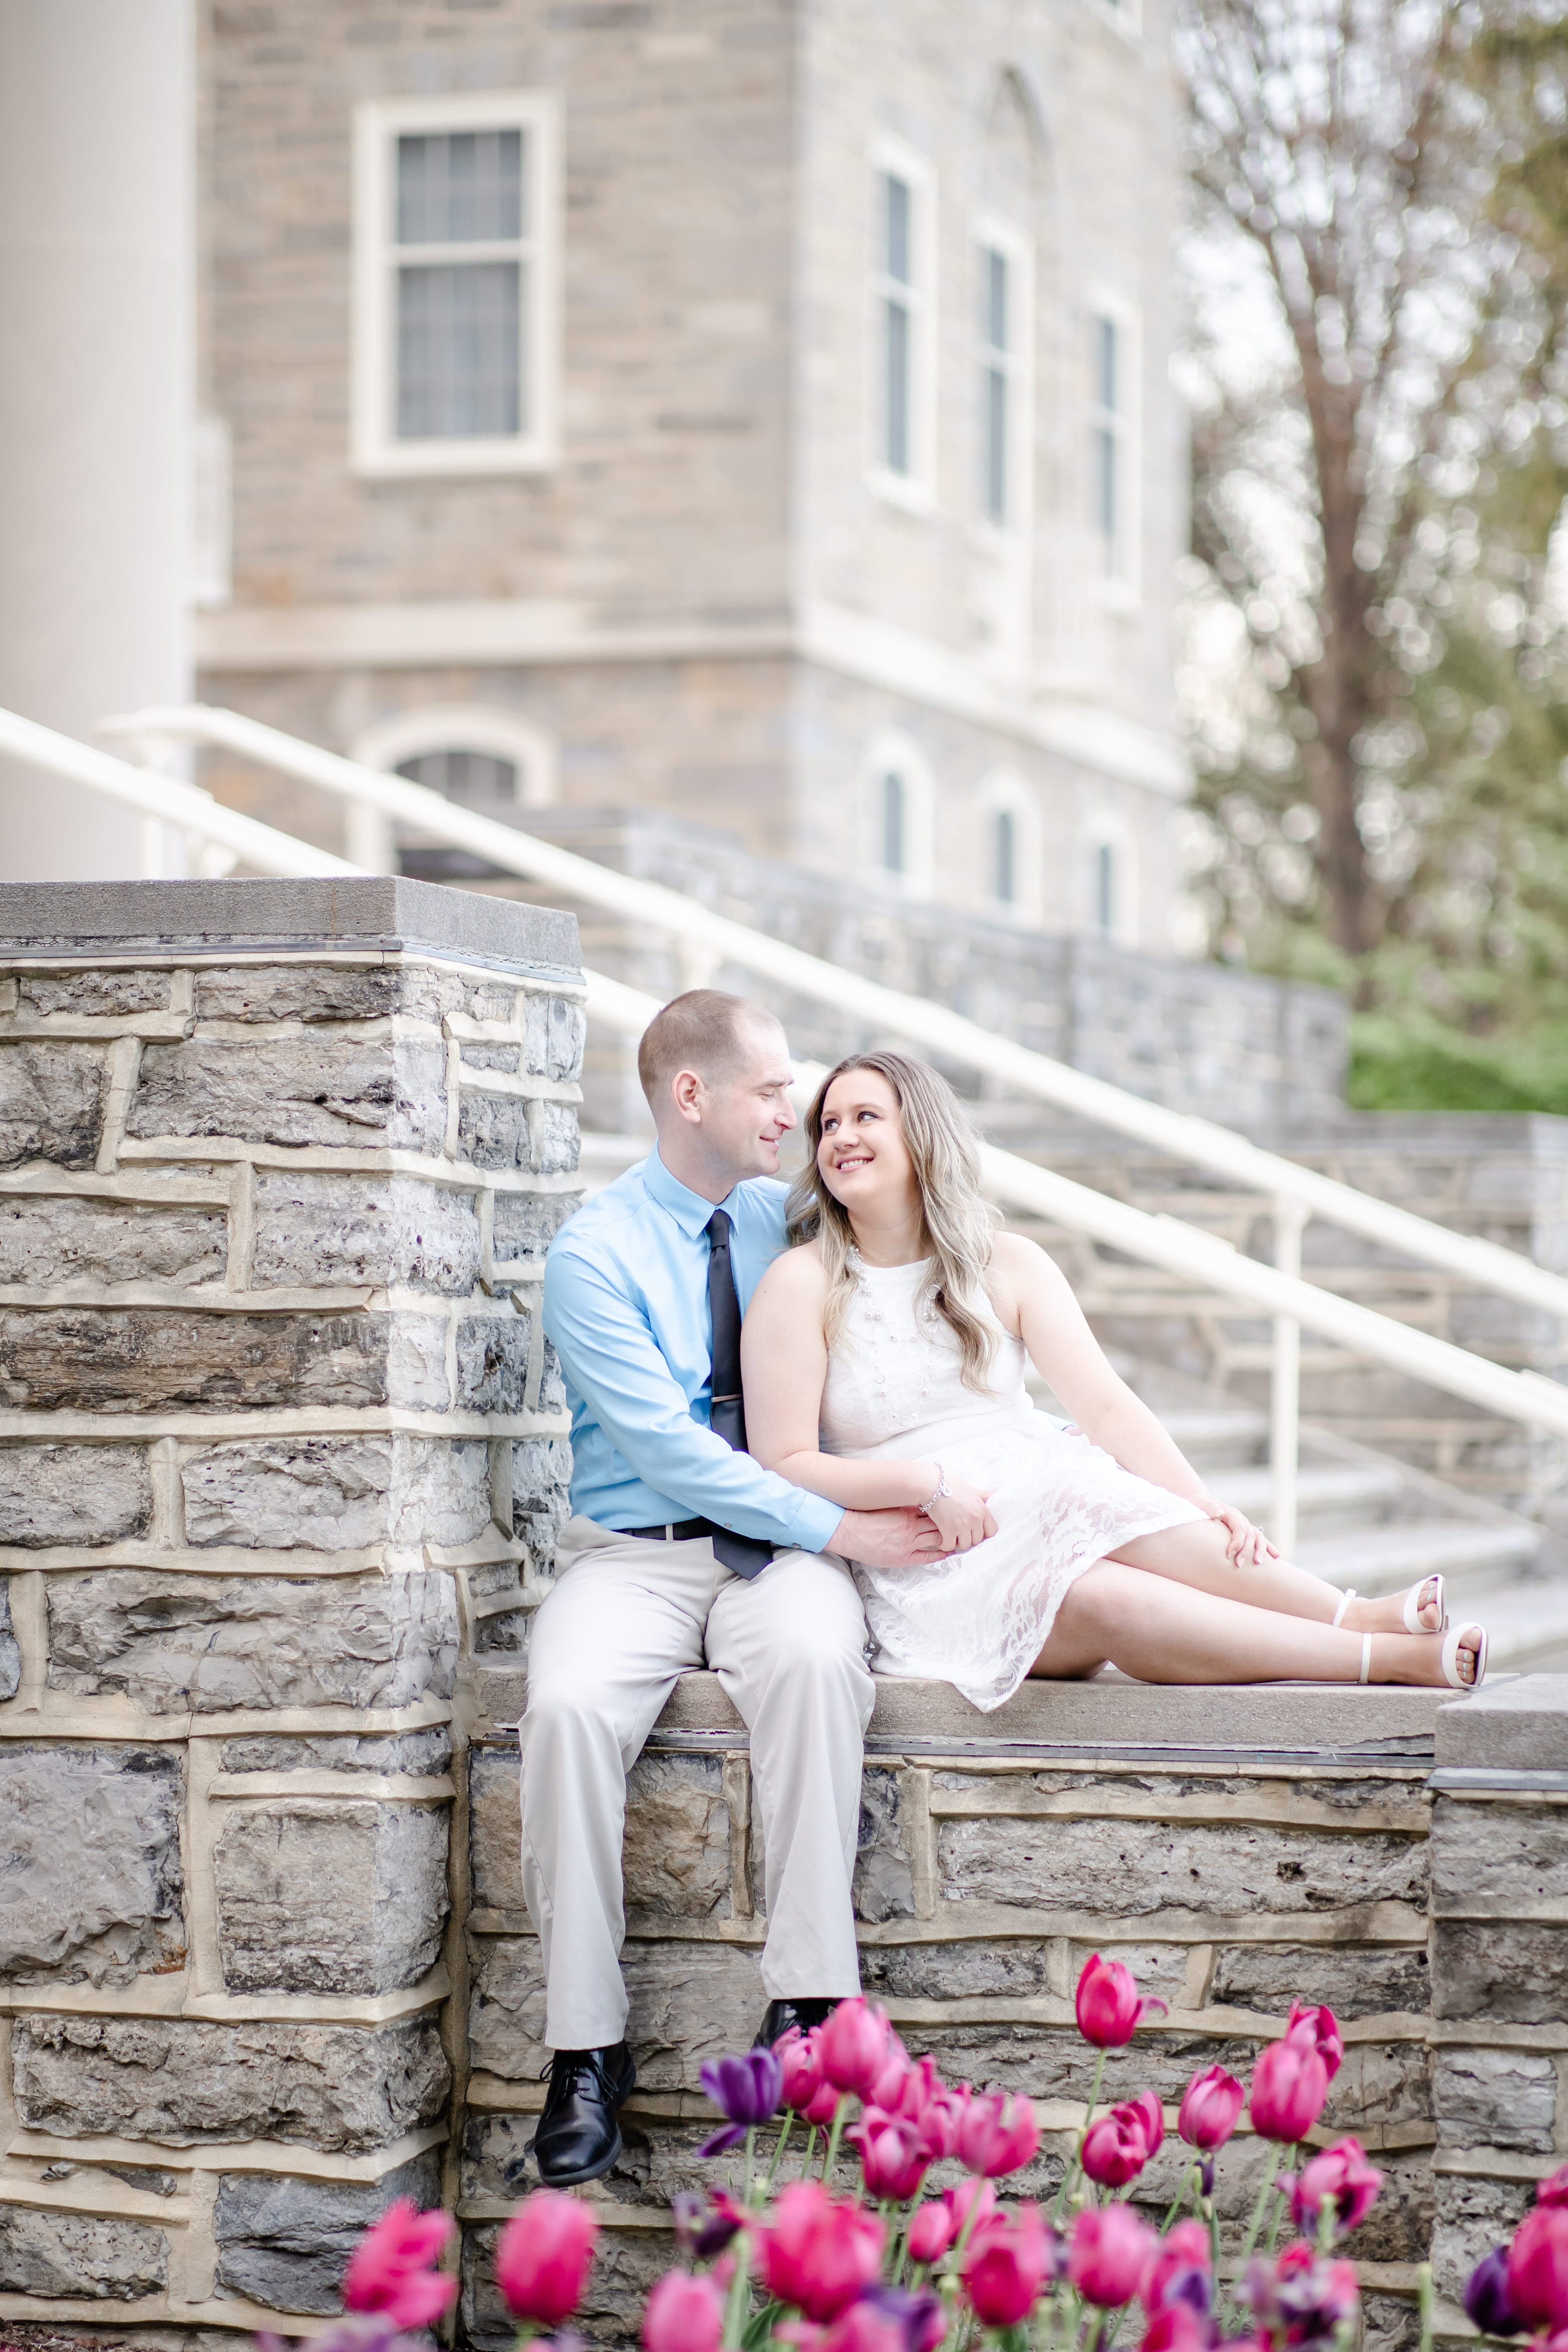 Engagement photo at Penn State Old Main steps during springtime